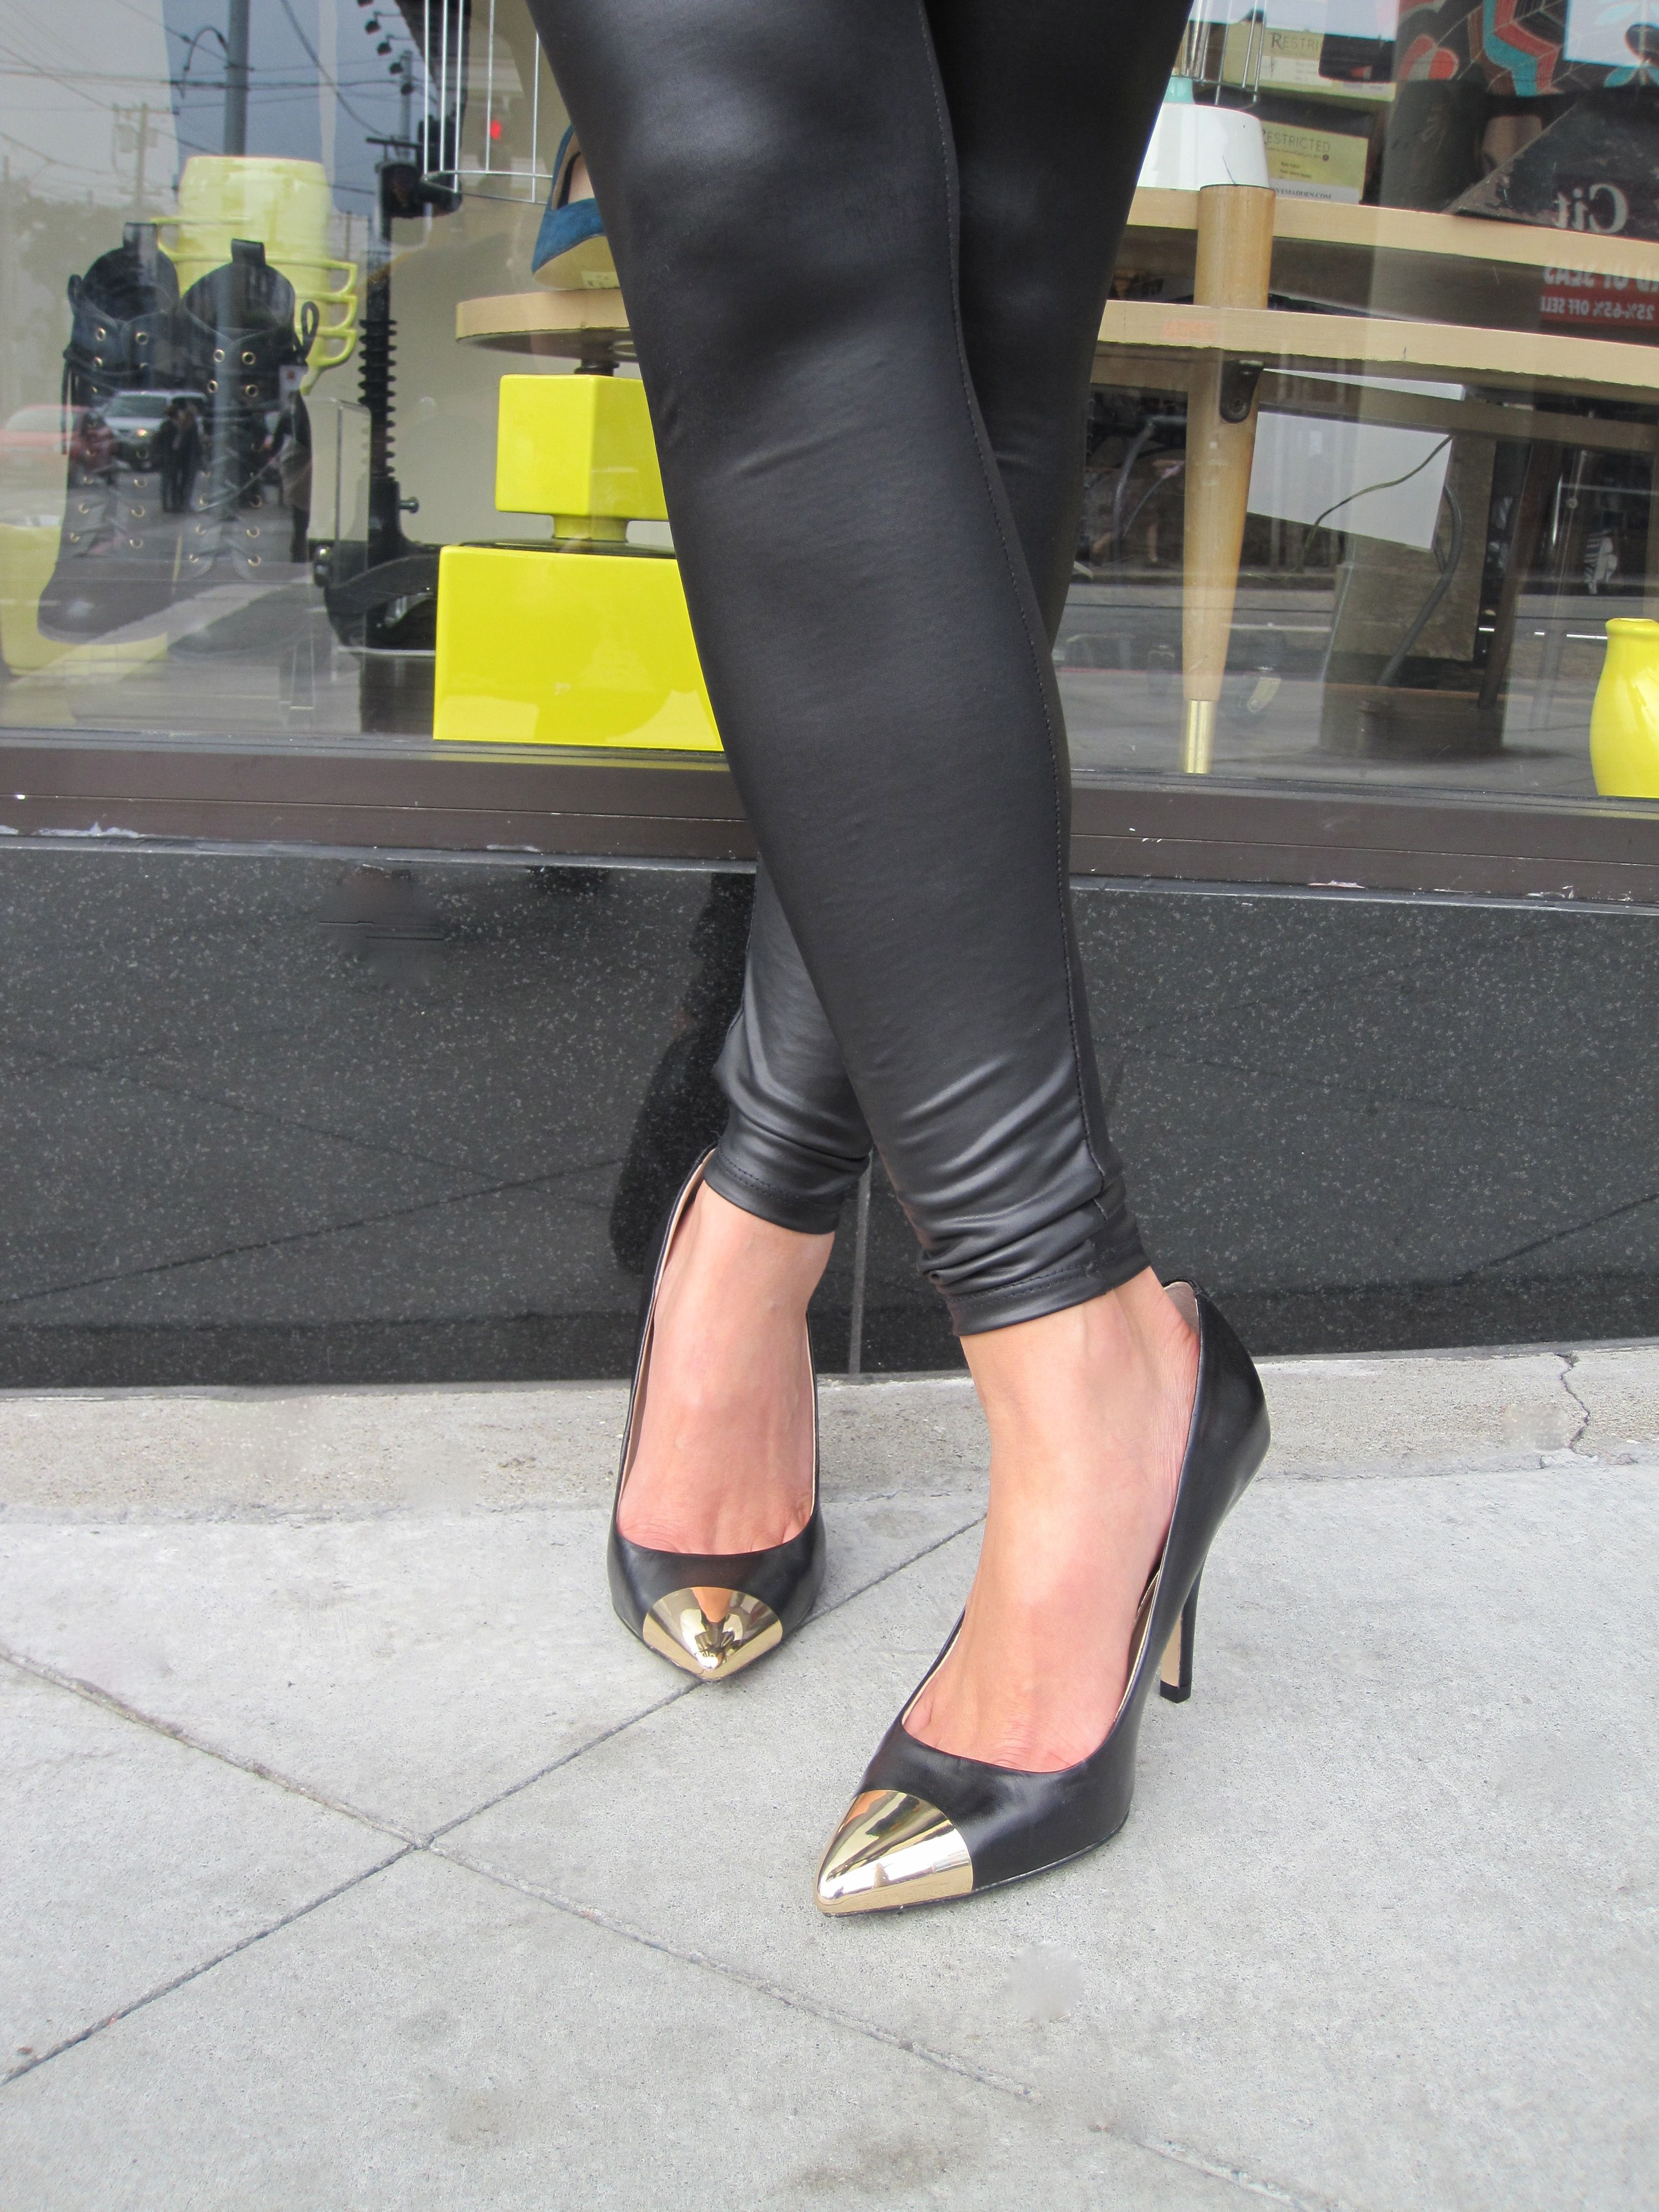 A seductive twist on a classy pointed toe pump w/ a polished metal toe cap. By Chinese Laundry $99.